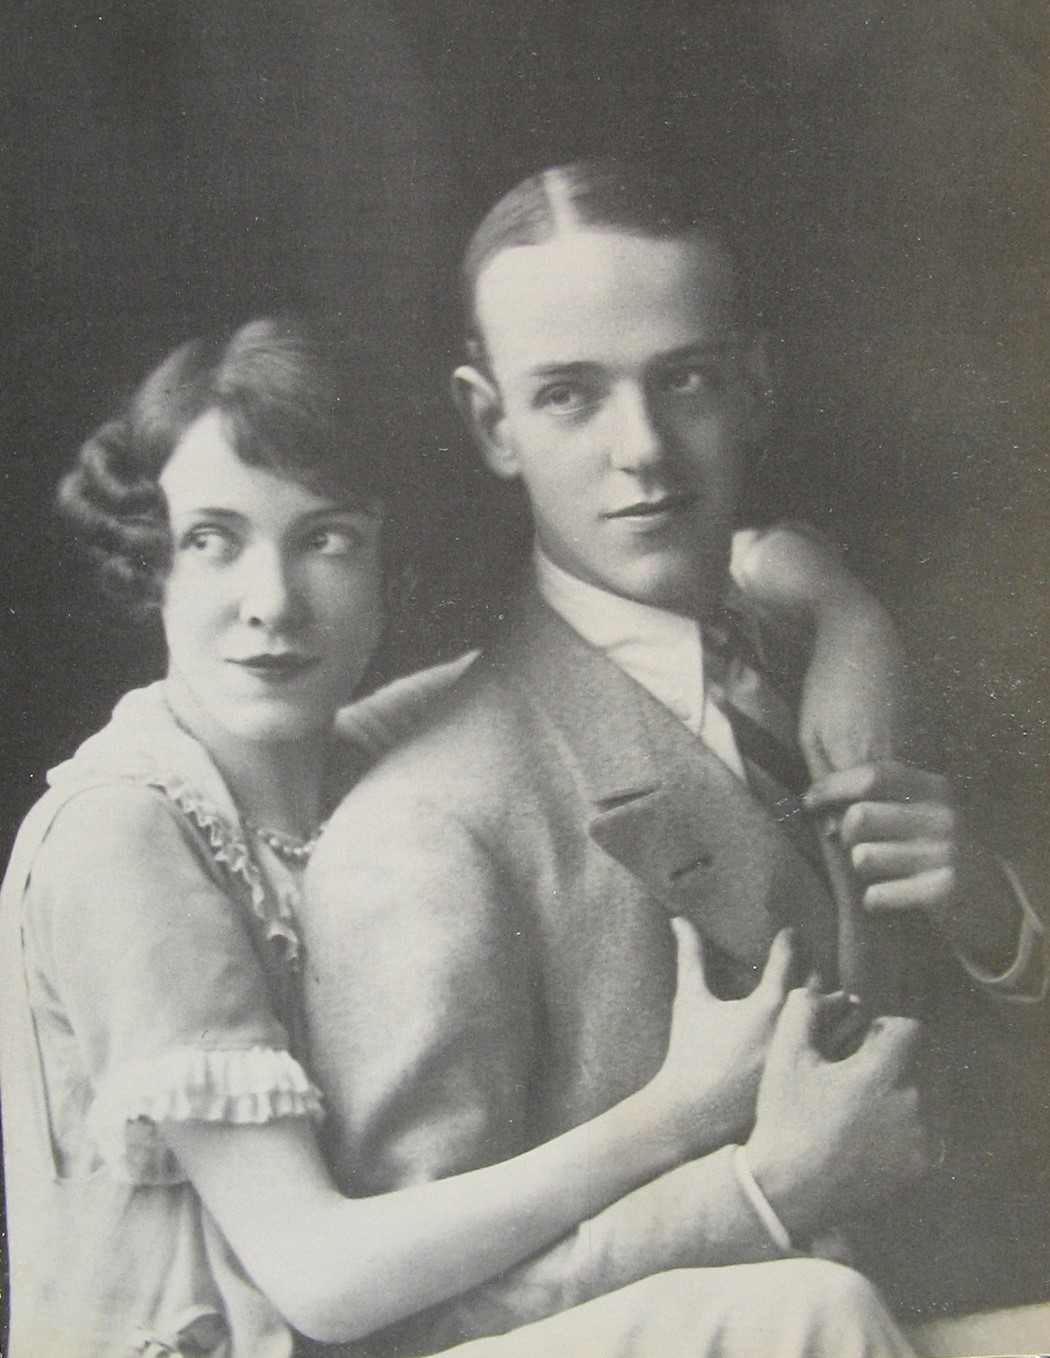 Fred_and_Adele_Astaire_in_1919